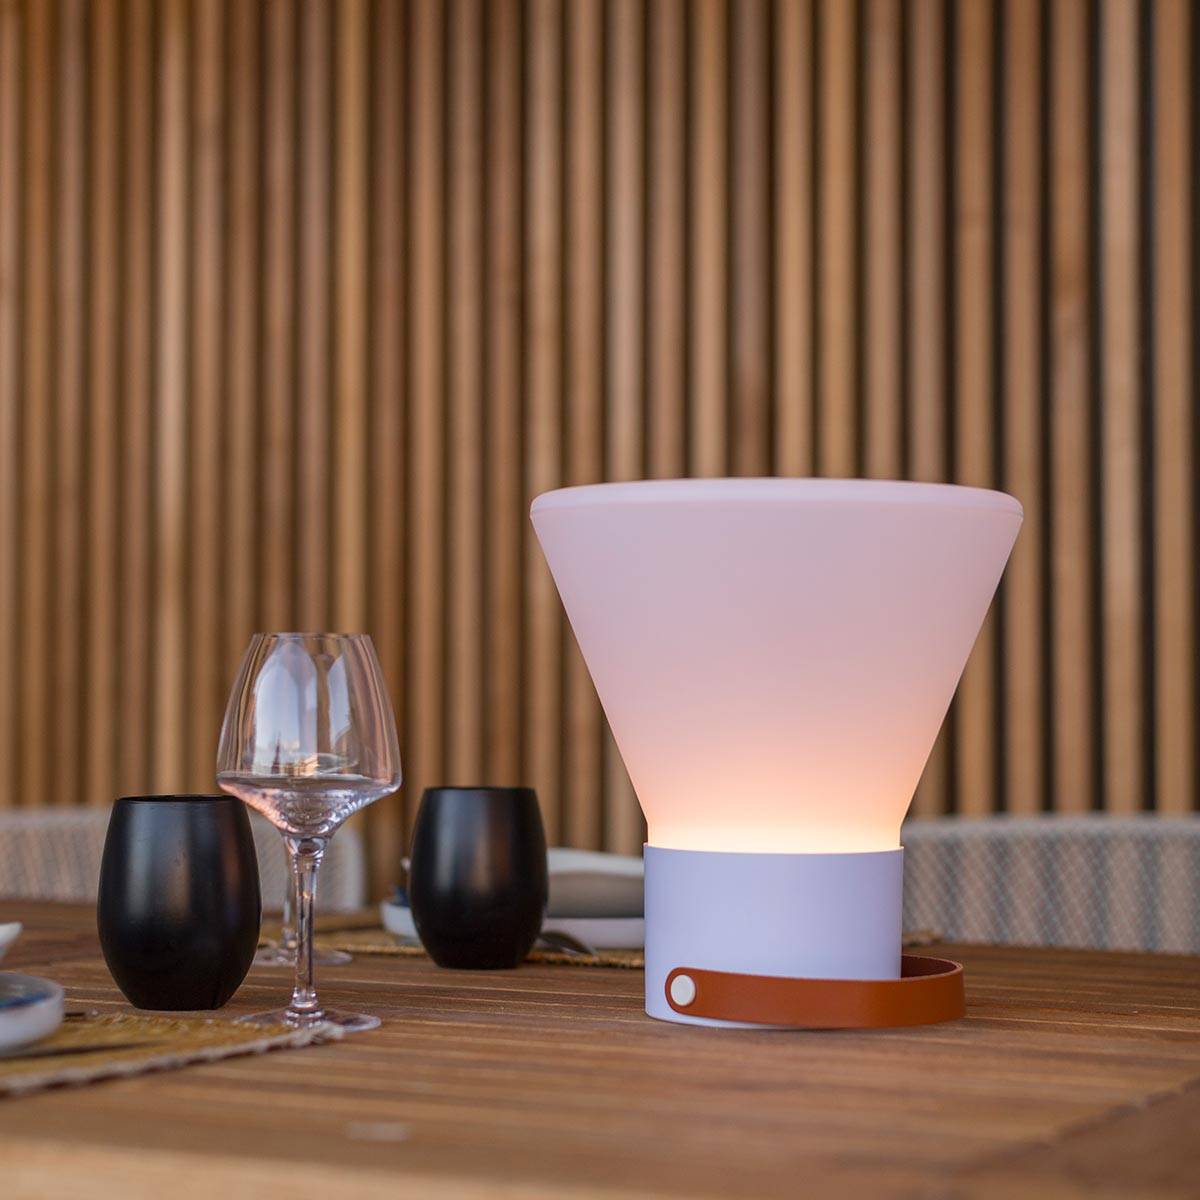 Lampe sans fil design poignée cuir LED blanc/multicolore dimmable JOE CONIC H33cm avec socle à induction - REDDECO.com